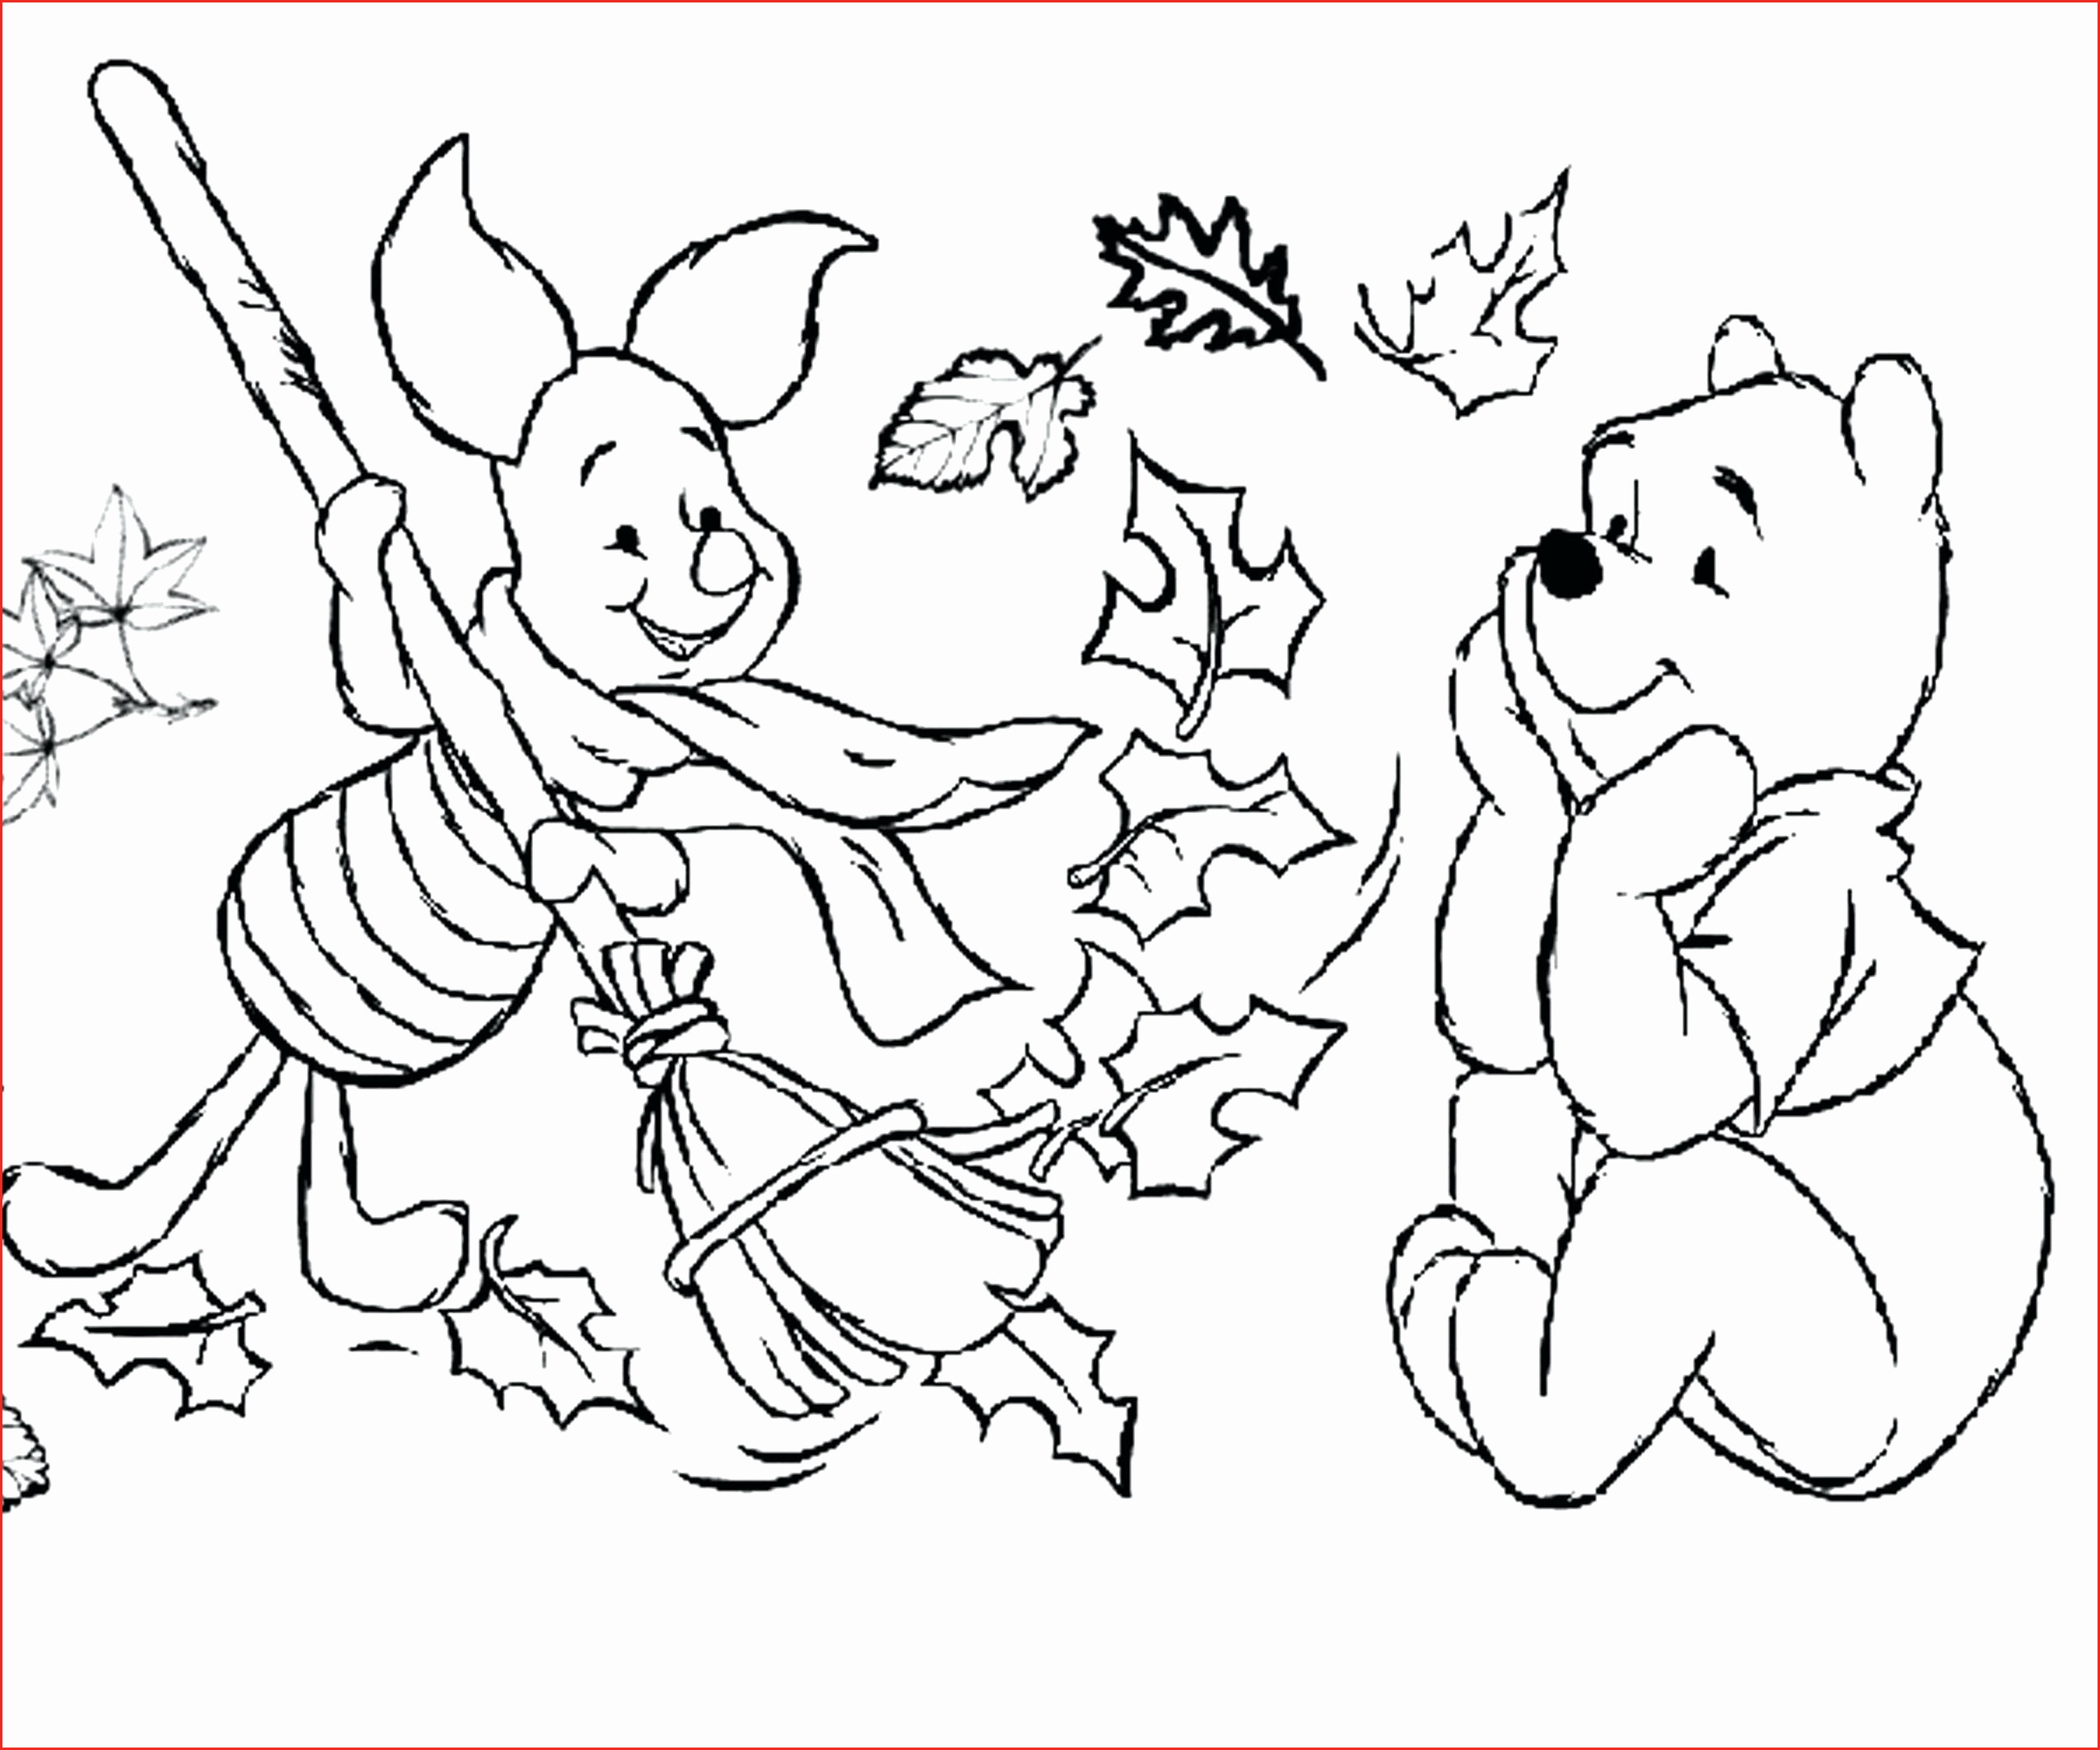 Printable Hummingbird Coloring Pages  Download 16i - Save it to your computer